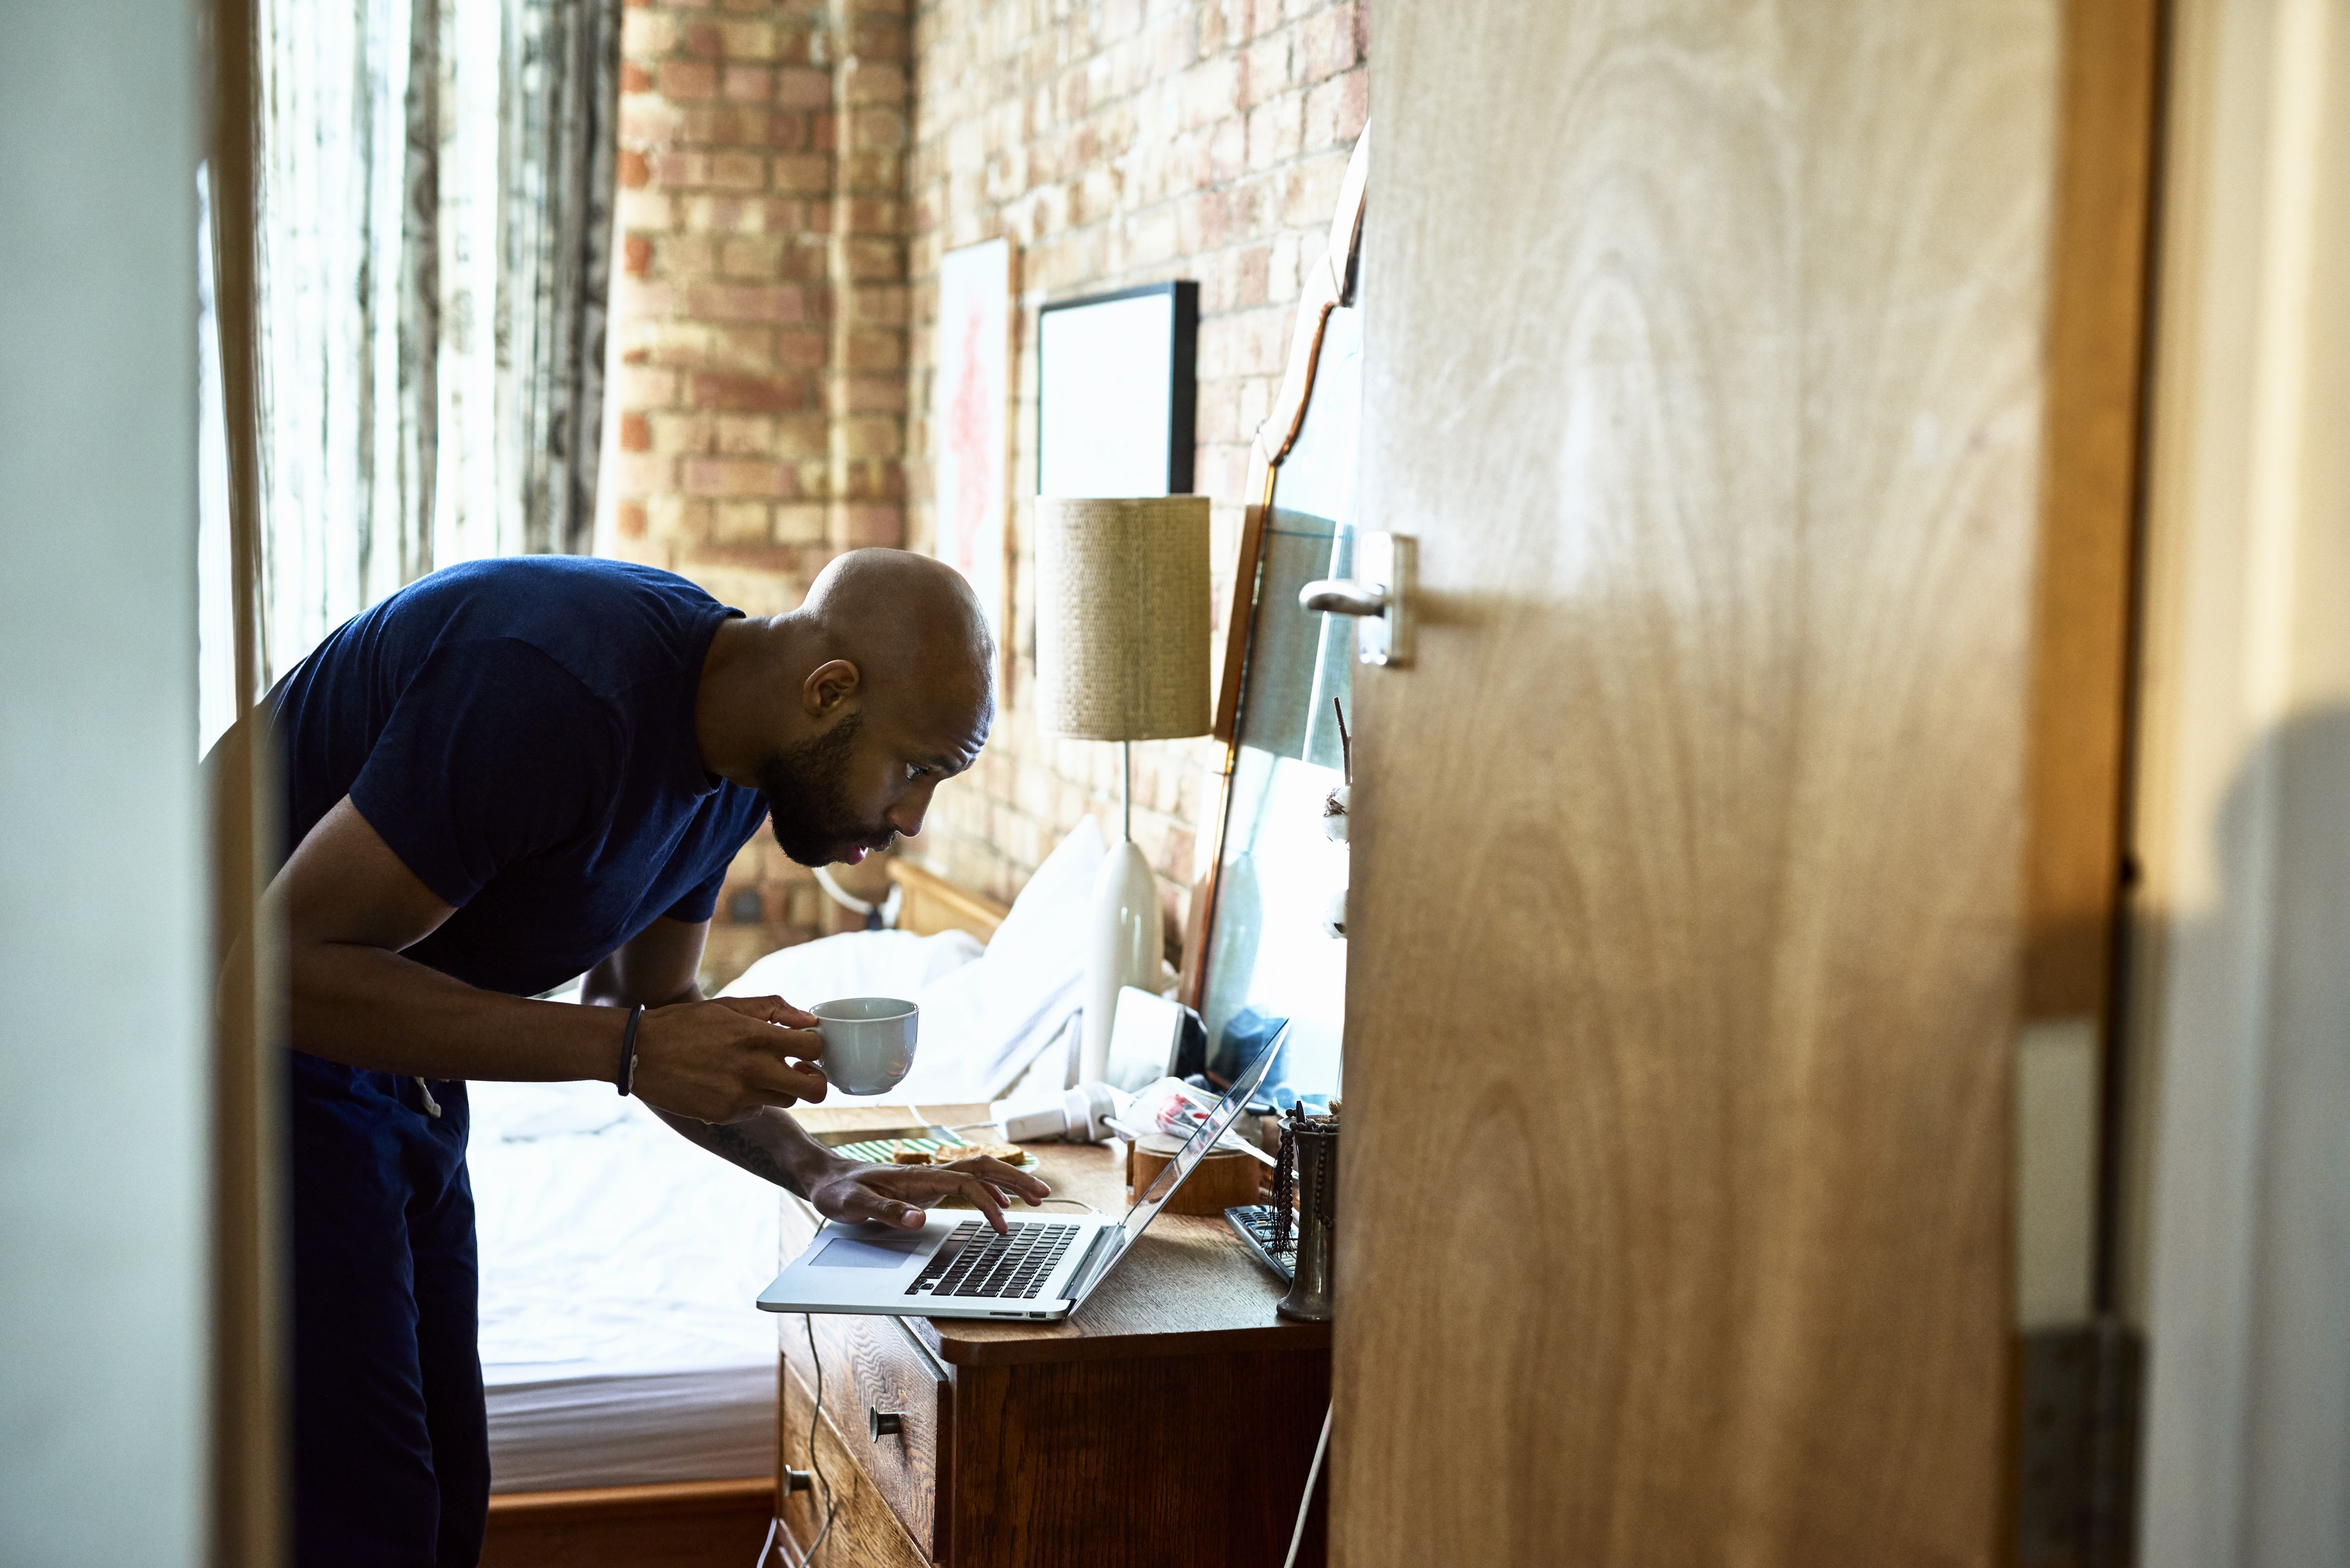 A man holds his coffee cup, checking emails on a laptop on his nightstand in his bedroom.